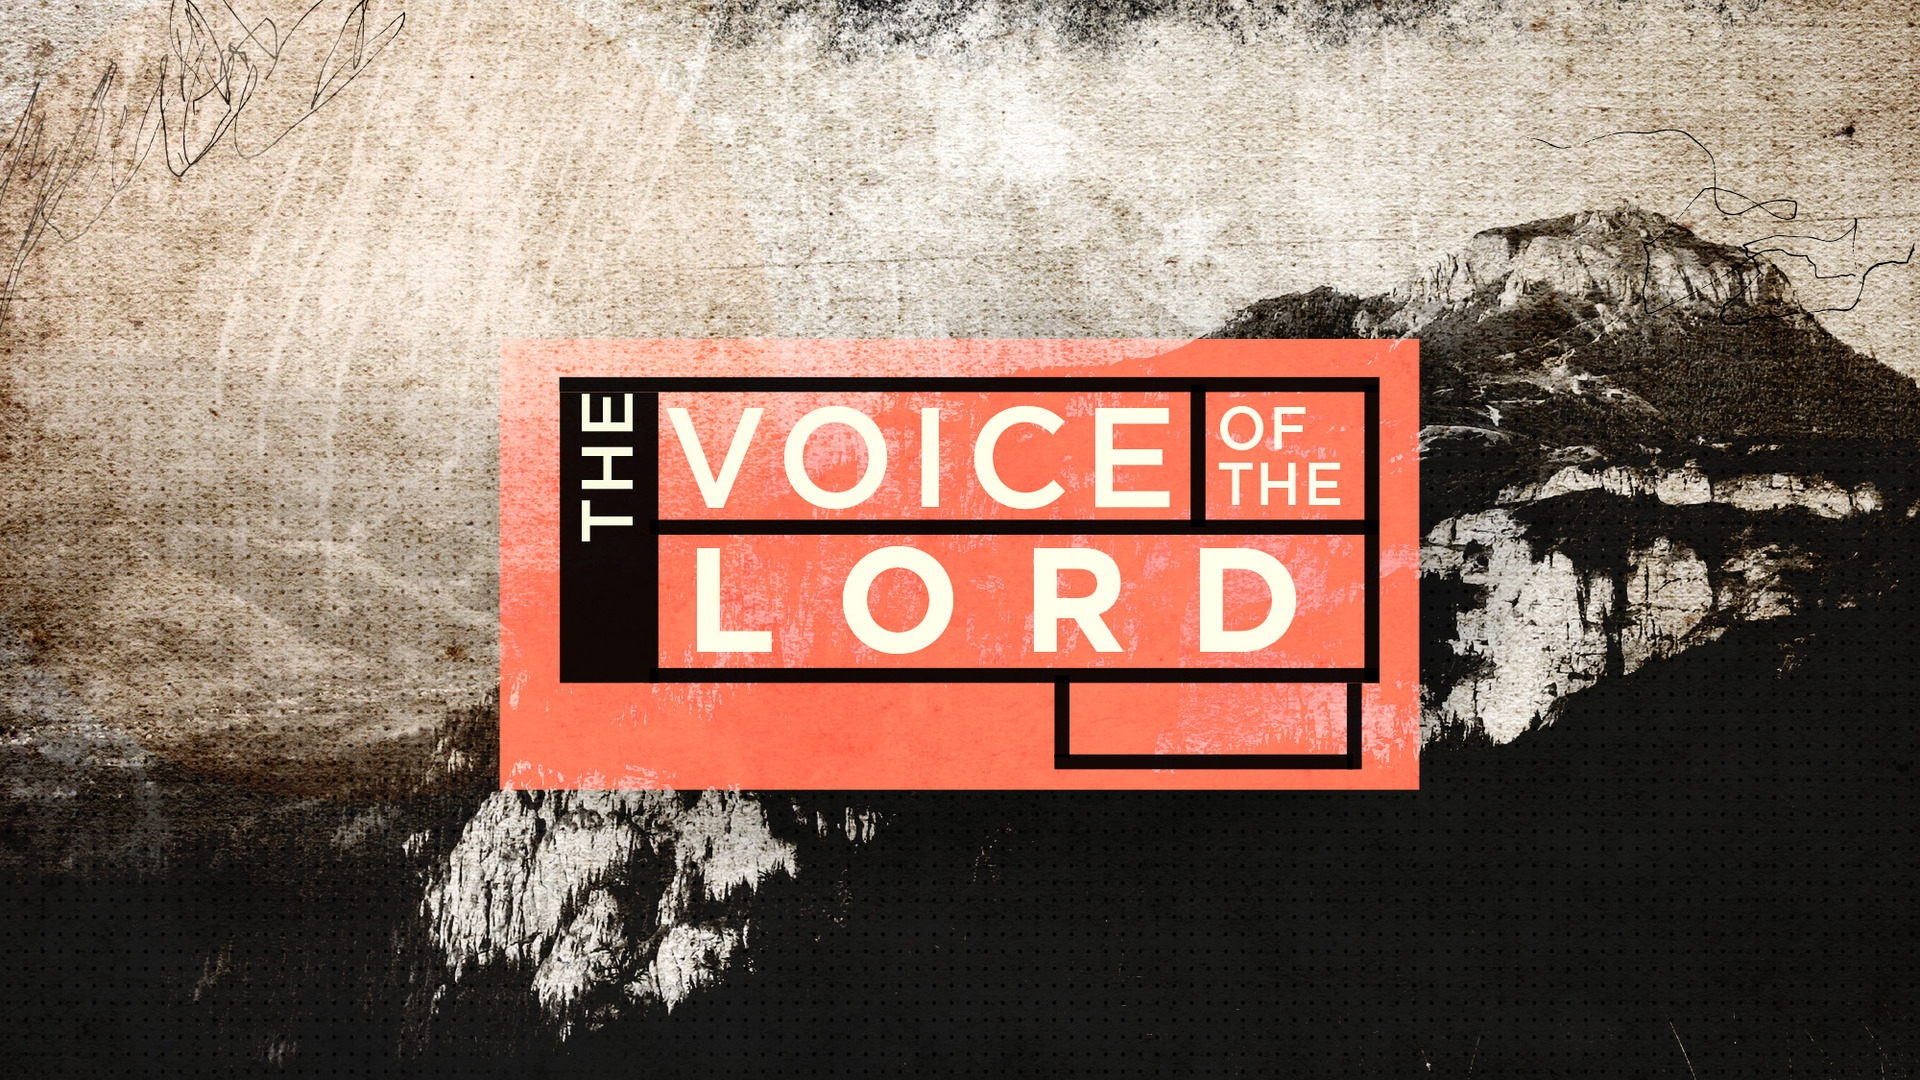 Sunday January 10, 2021 The Voice Of The Lord - Pastor Anthony Cox